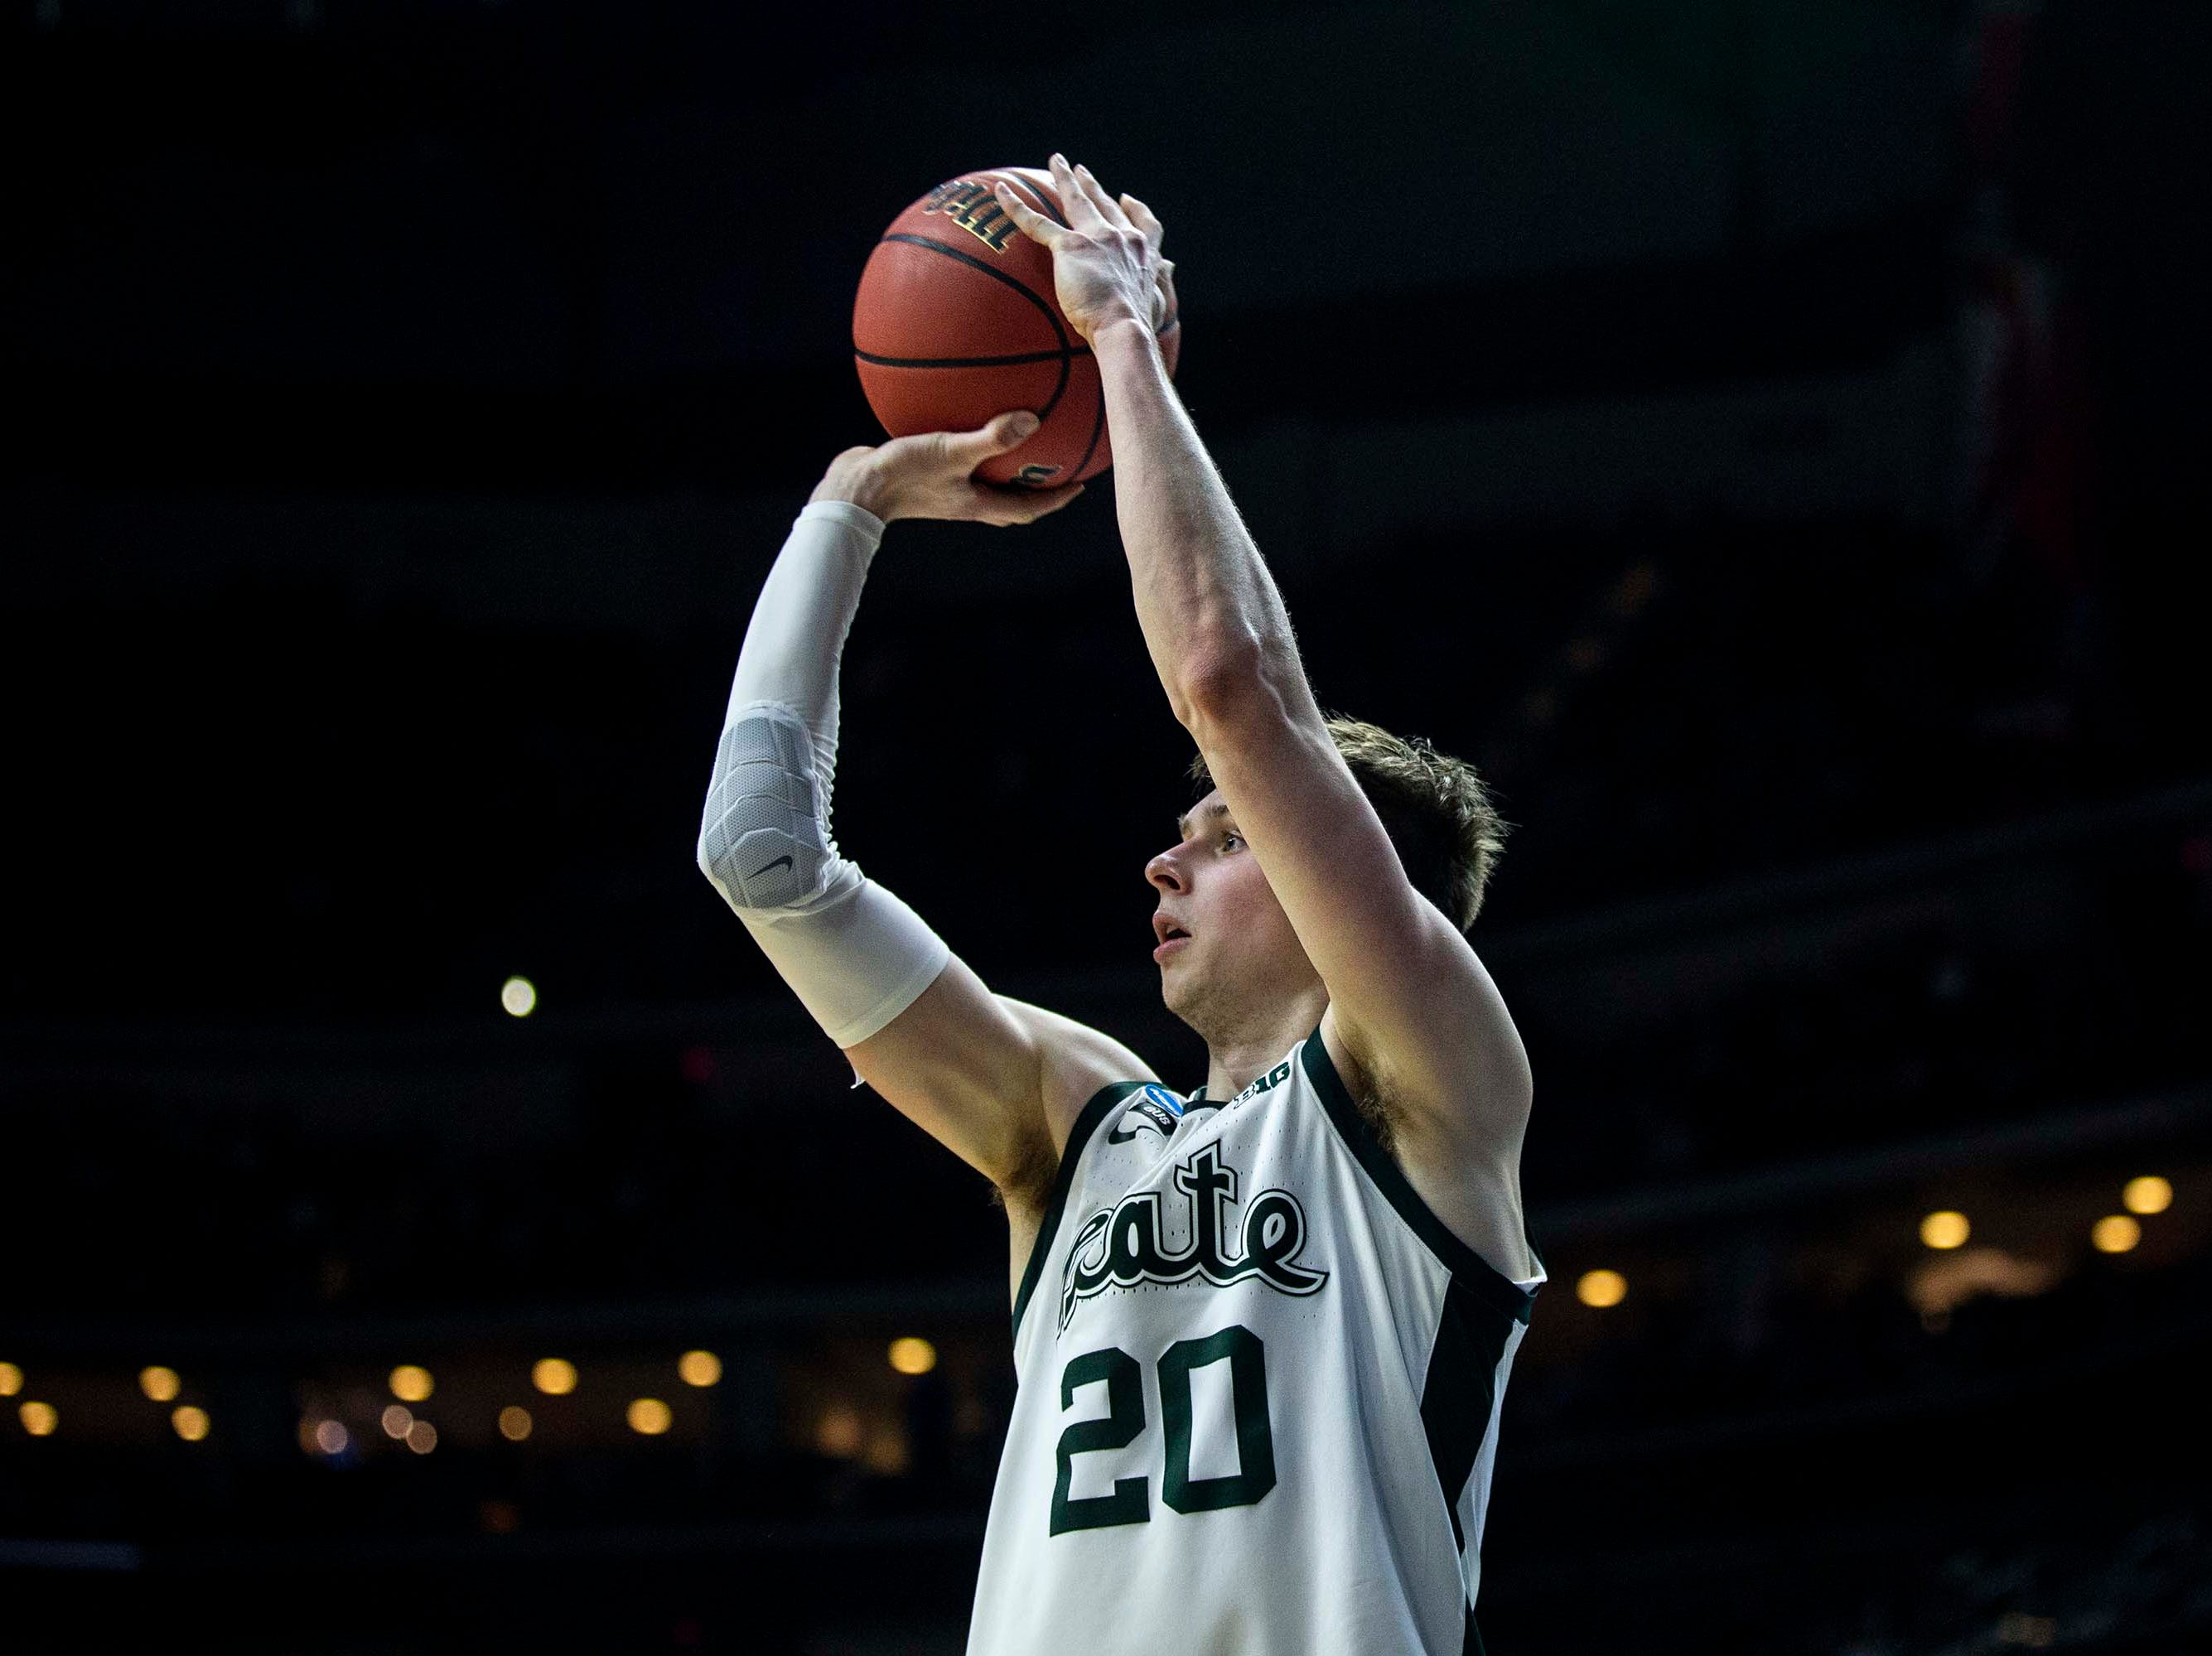 Michigan State's Matt McQuaid shoots the ball during the NCAA Tournament second-round match-up between Minnesota and Michigan State on Saturday, March 23, 2019, in Wells Fargo Arena in Des Moines, Iowa.